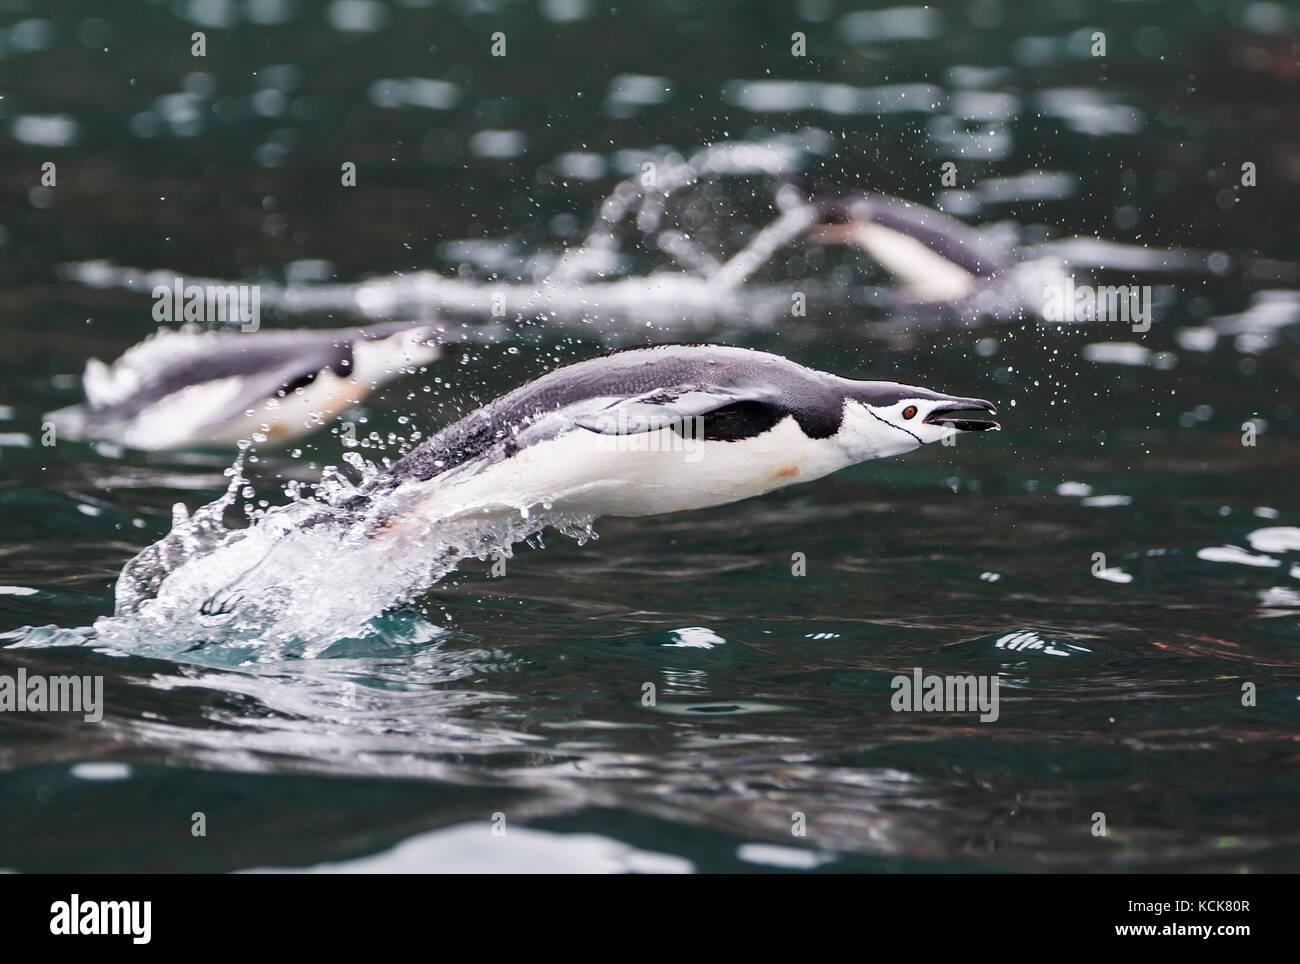 A Chinstrap Penguin (Pygoscelis antarctica) explodes out of the water while swimming in waters near Brown Bluff, Stock Photo